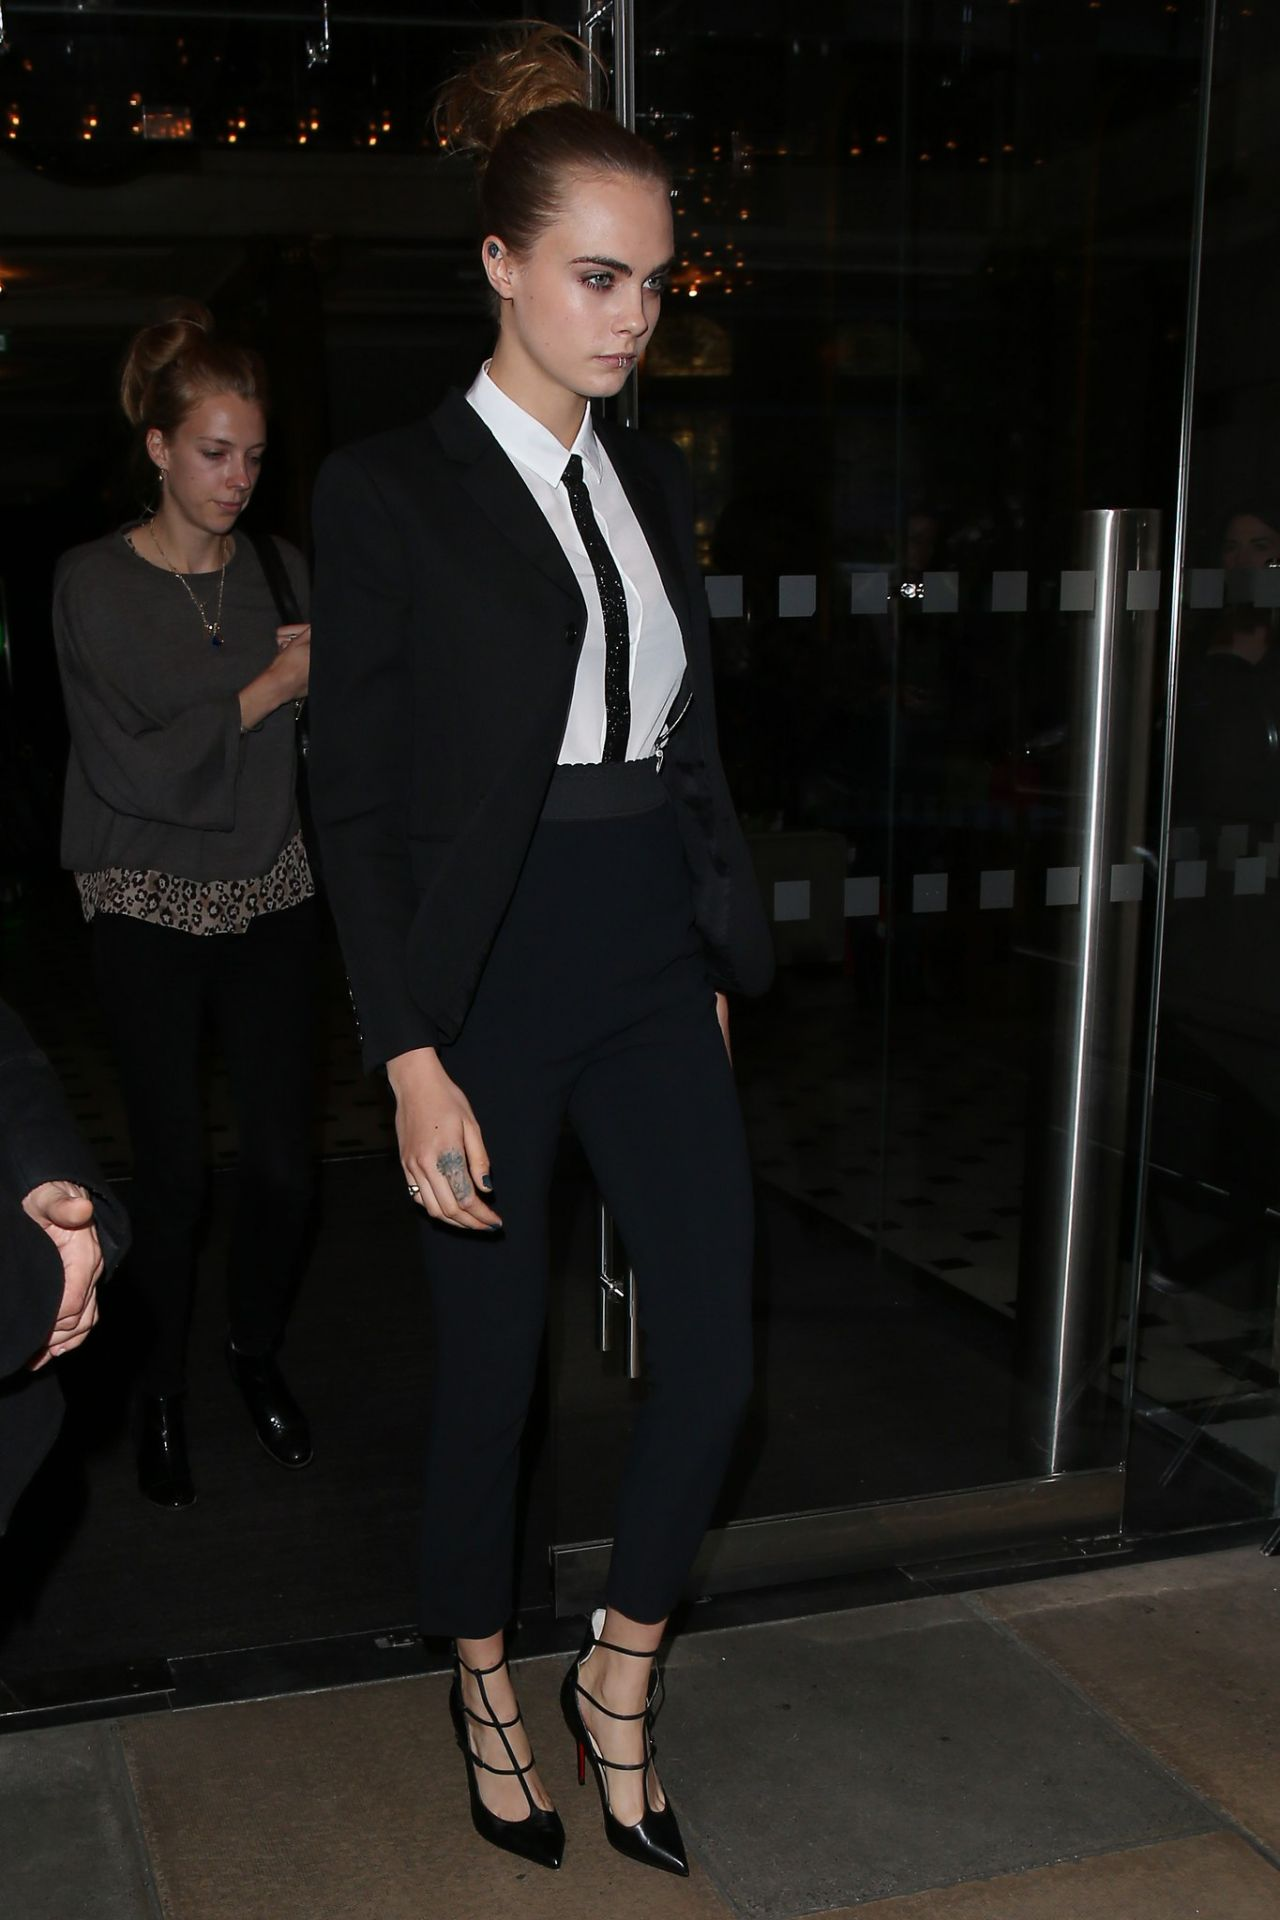 https://fashionsizzle.com/wp-content/uploads/2015/10/cara-delevingne-leaving-a-hotel-in-london-october-2015_3.jpg